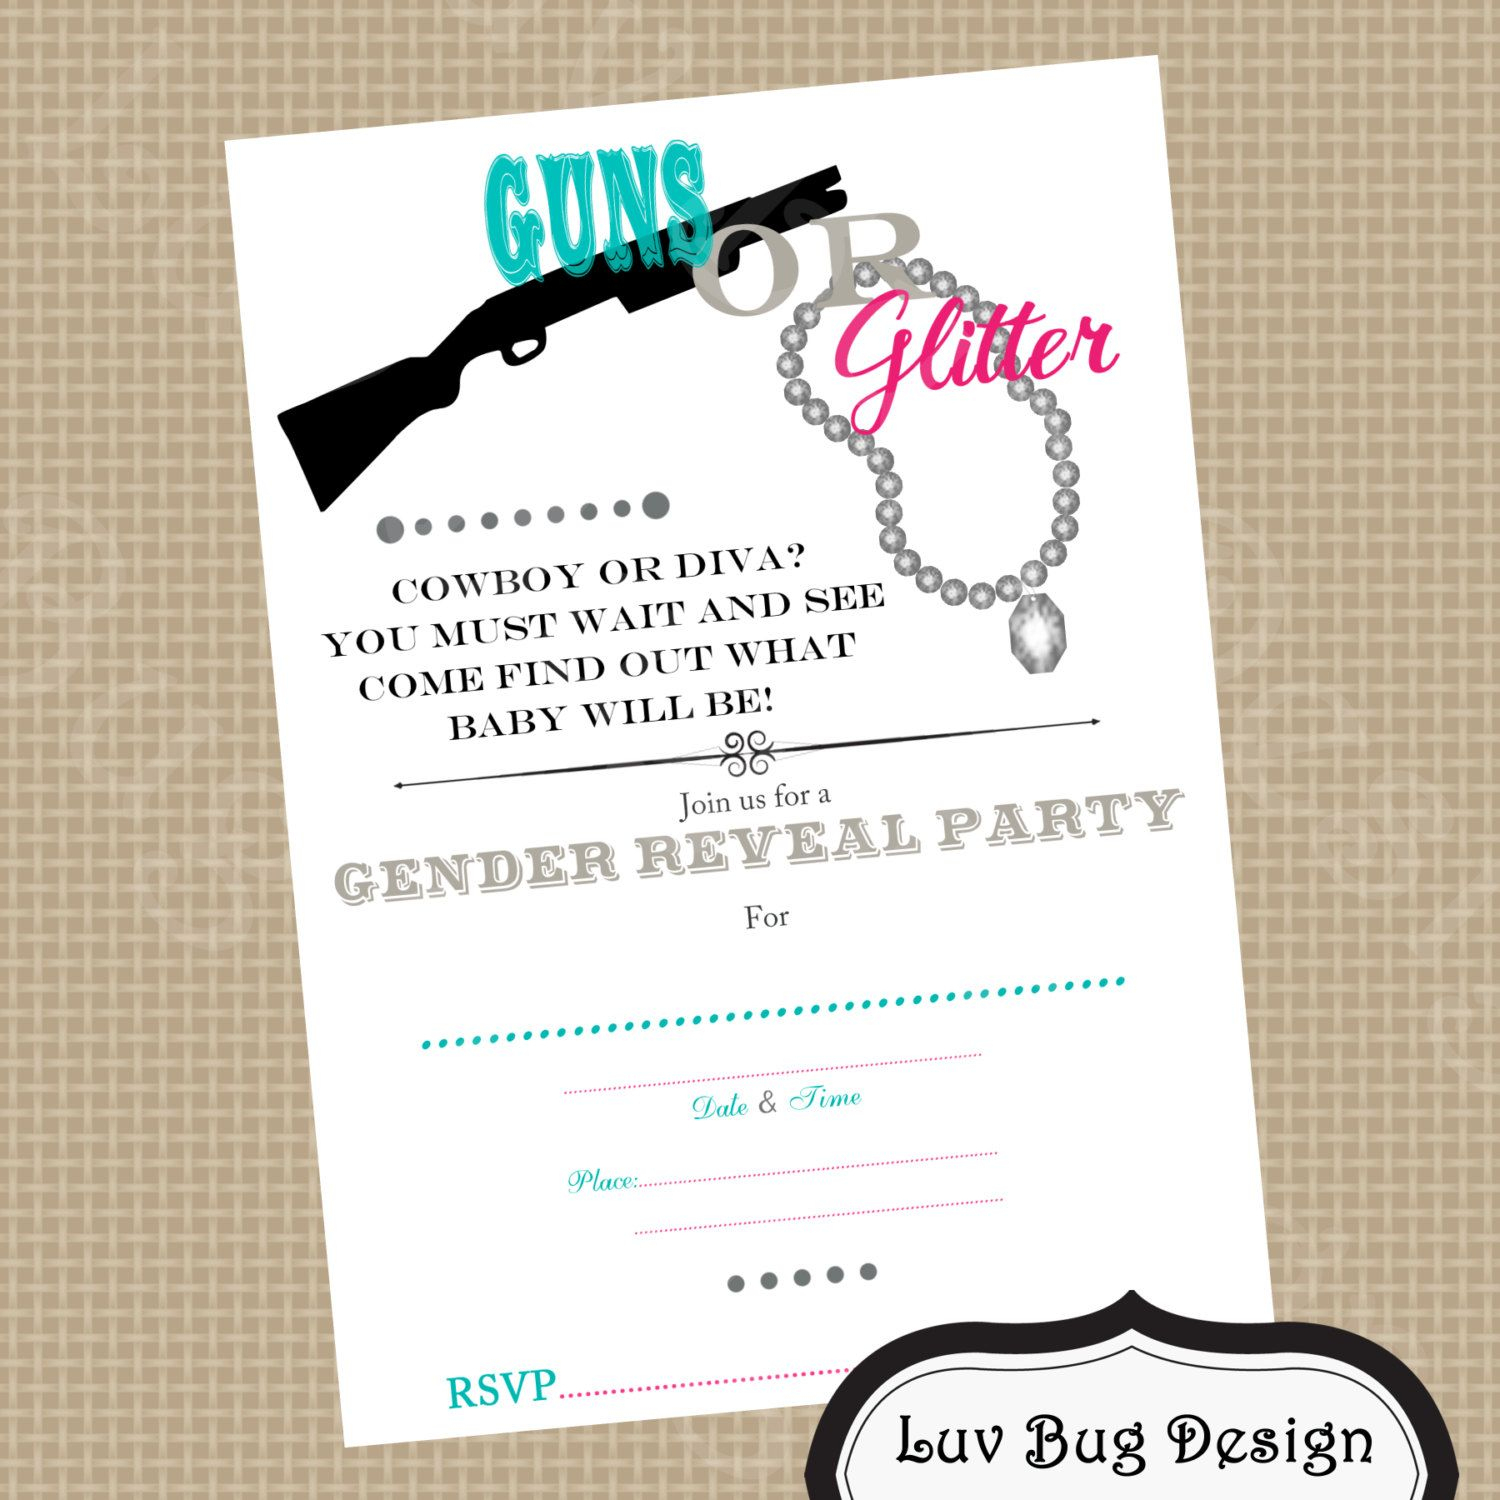 Free Gender Reveal Party Invitations - Free Printable Fresh Gender - Free Printable Gender Reveal Templates